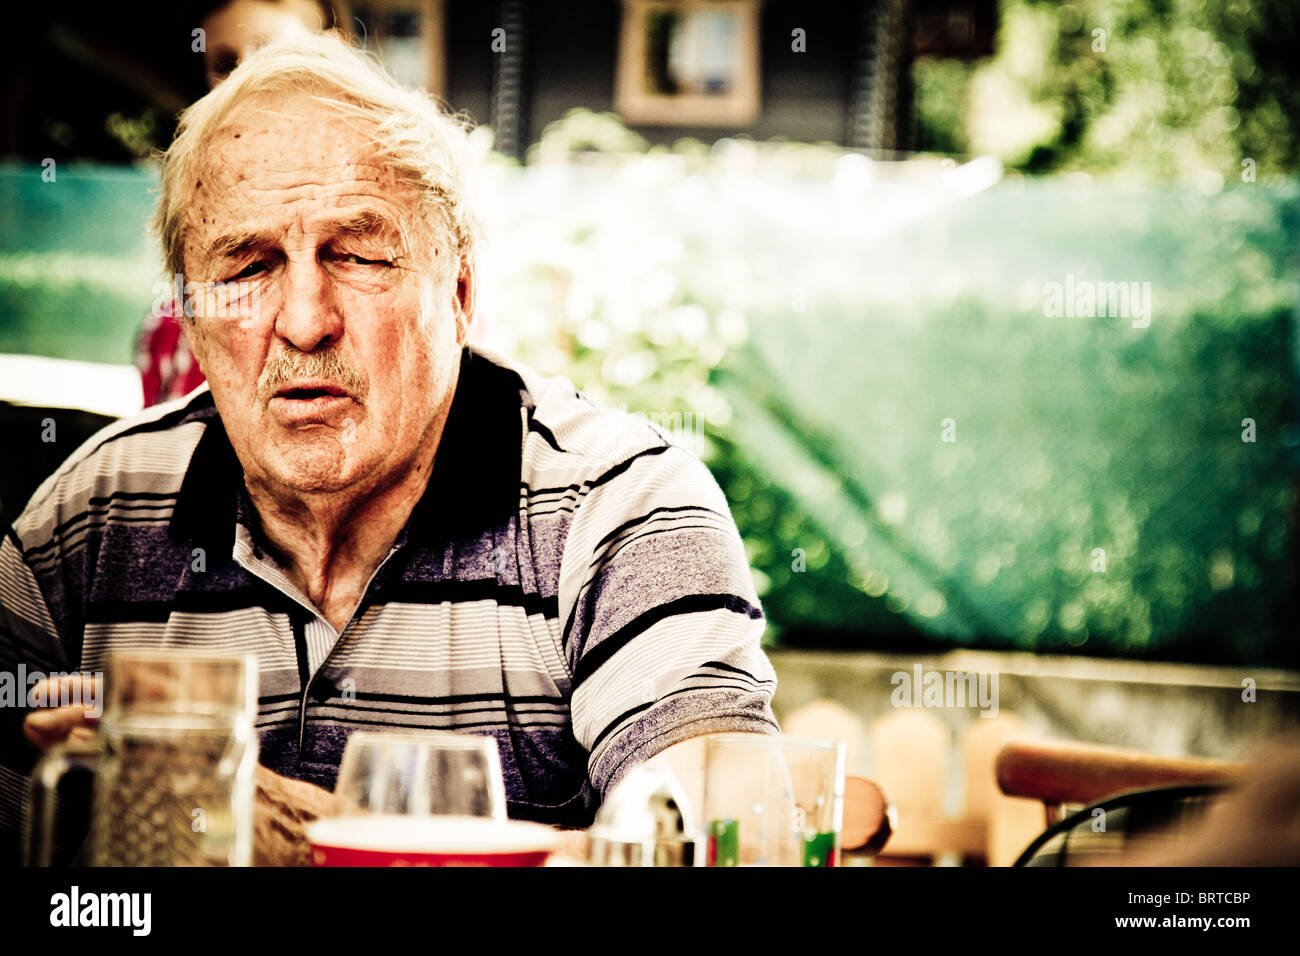 Old man stamped by his age and wisdom - Stock Image